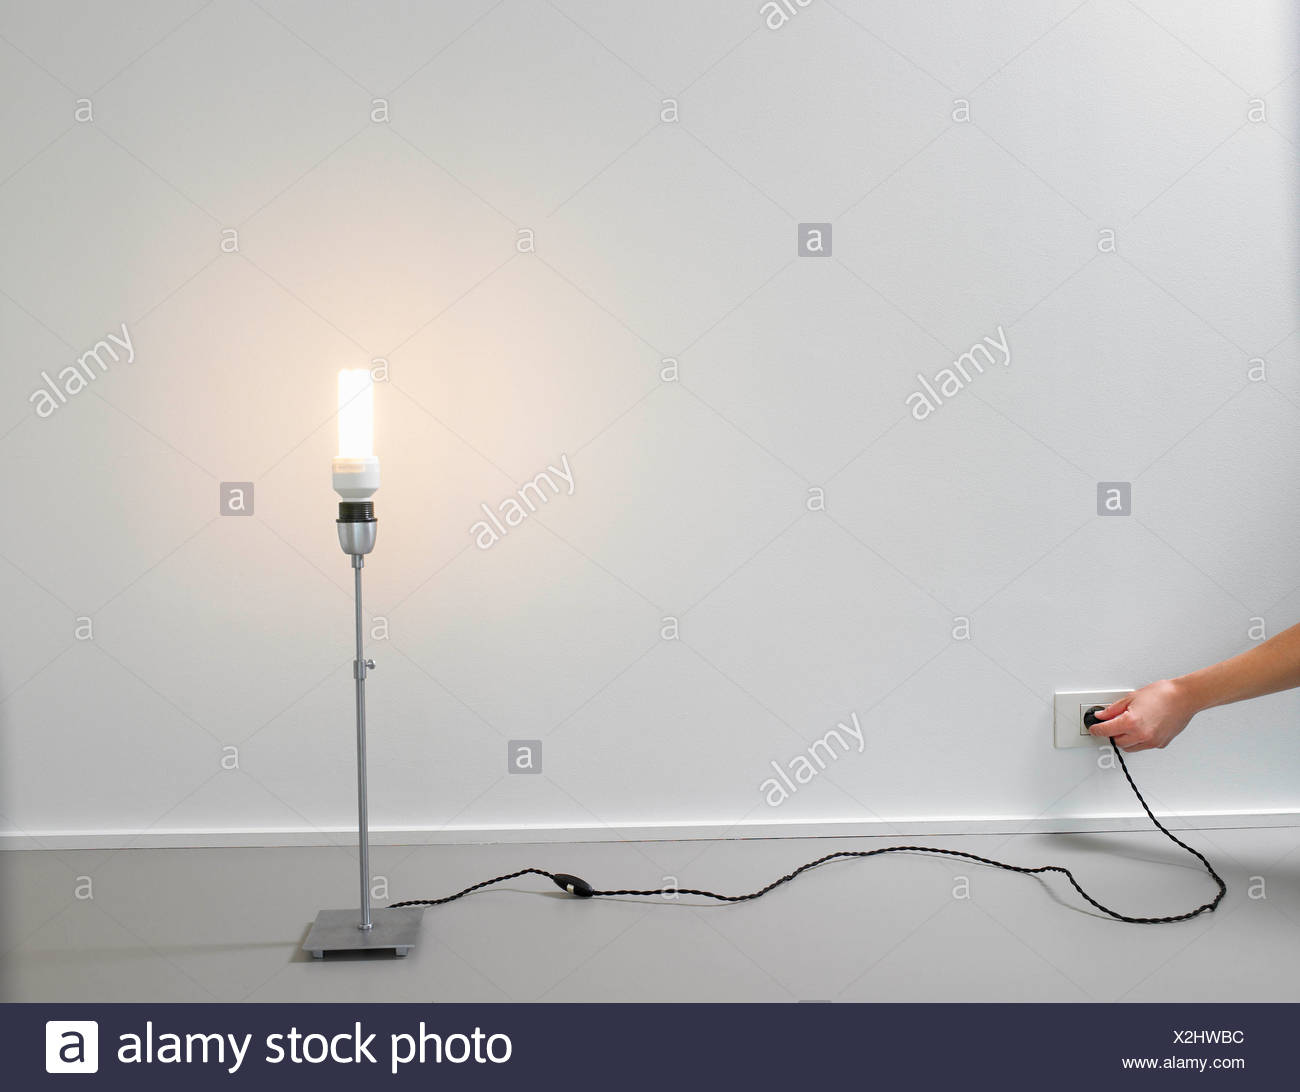 conserving energy stock photos \u0026 conserving energy stock images alamylamp with energy saver light bulb stock image